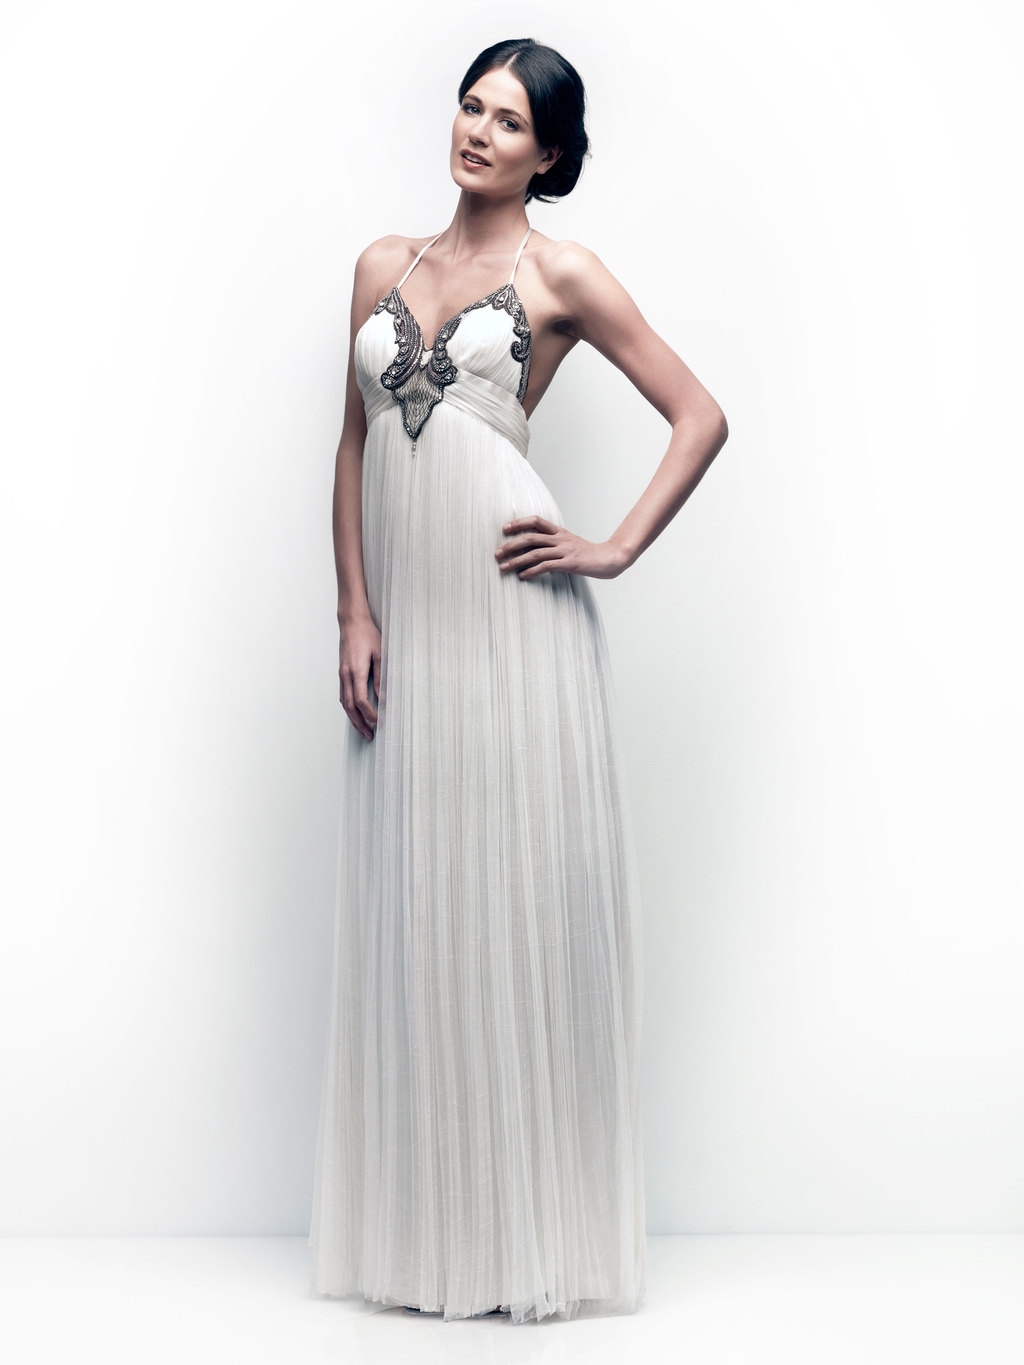 Catherine-deane-wedding-dress-2013-bridal-collette.full